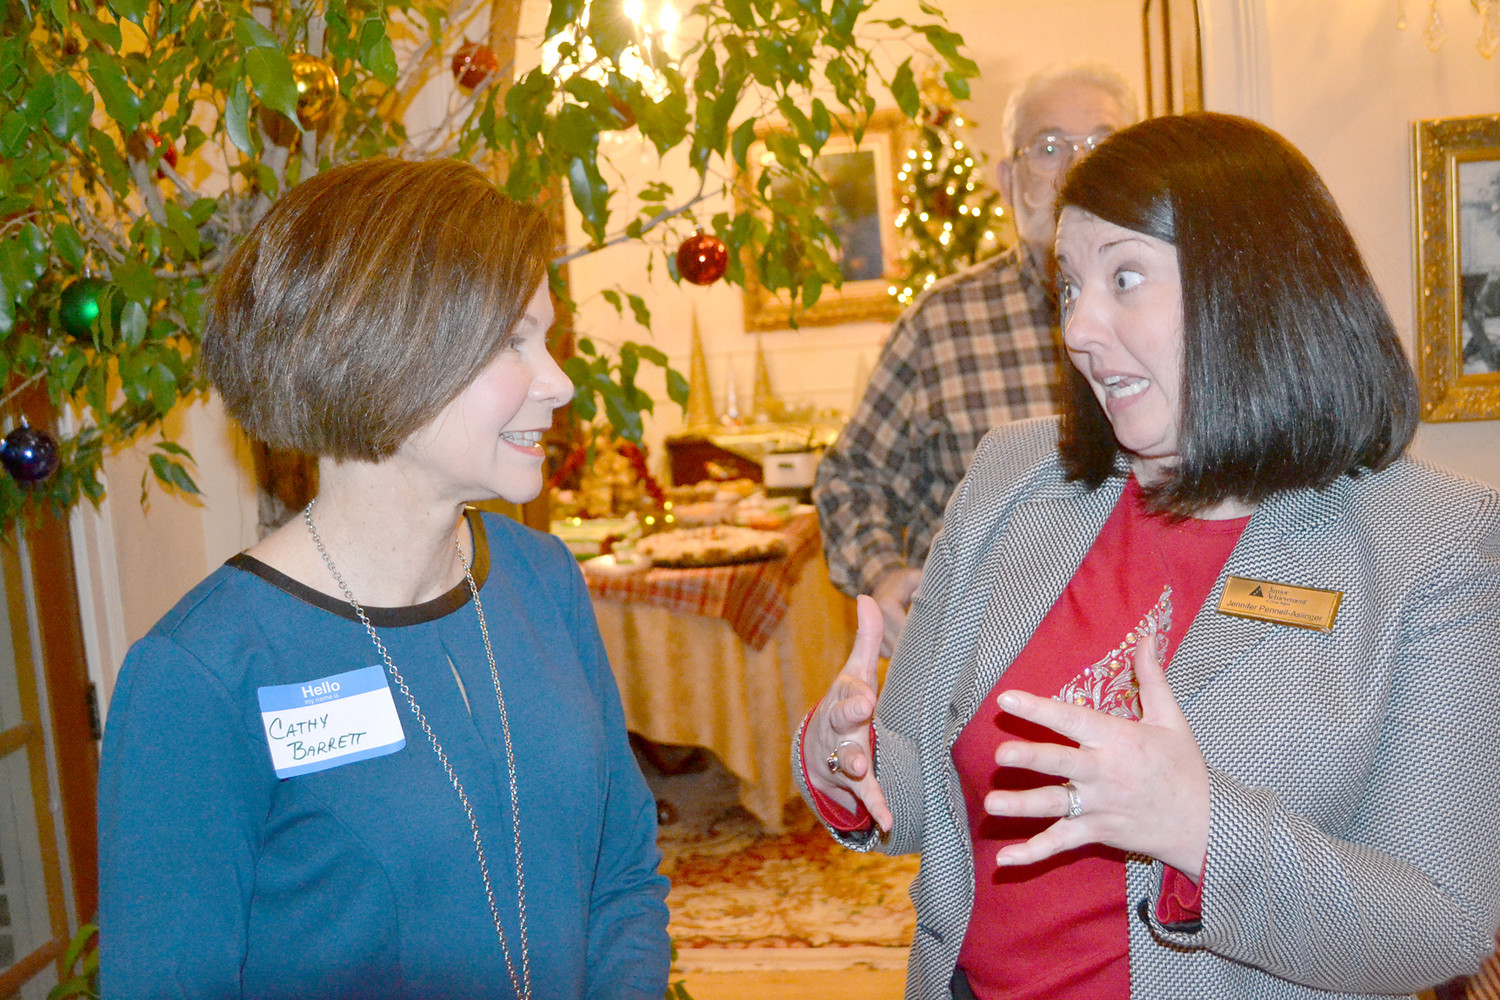 JENNIFER PENNELL-ASLINGER, right, was named the new president of Junior Achievement of the Ocoee Region in 2018. Here, she talks with Cathy Barrett, executive director of the Cleveland Community Foundation during a reception held in the new president's honor. Barrett once served as the JA president several years ago.